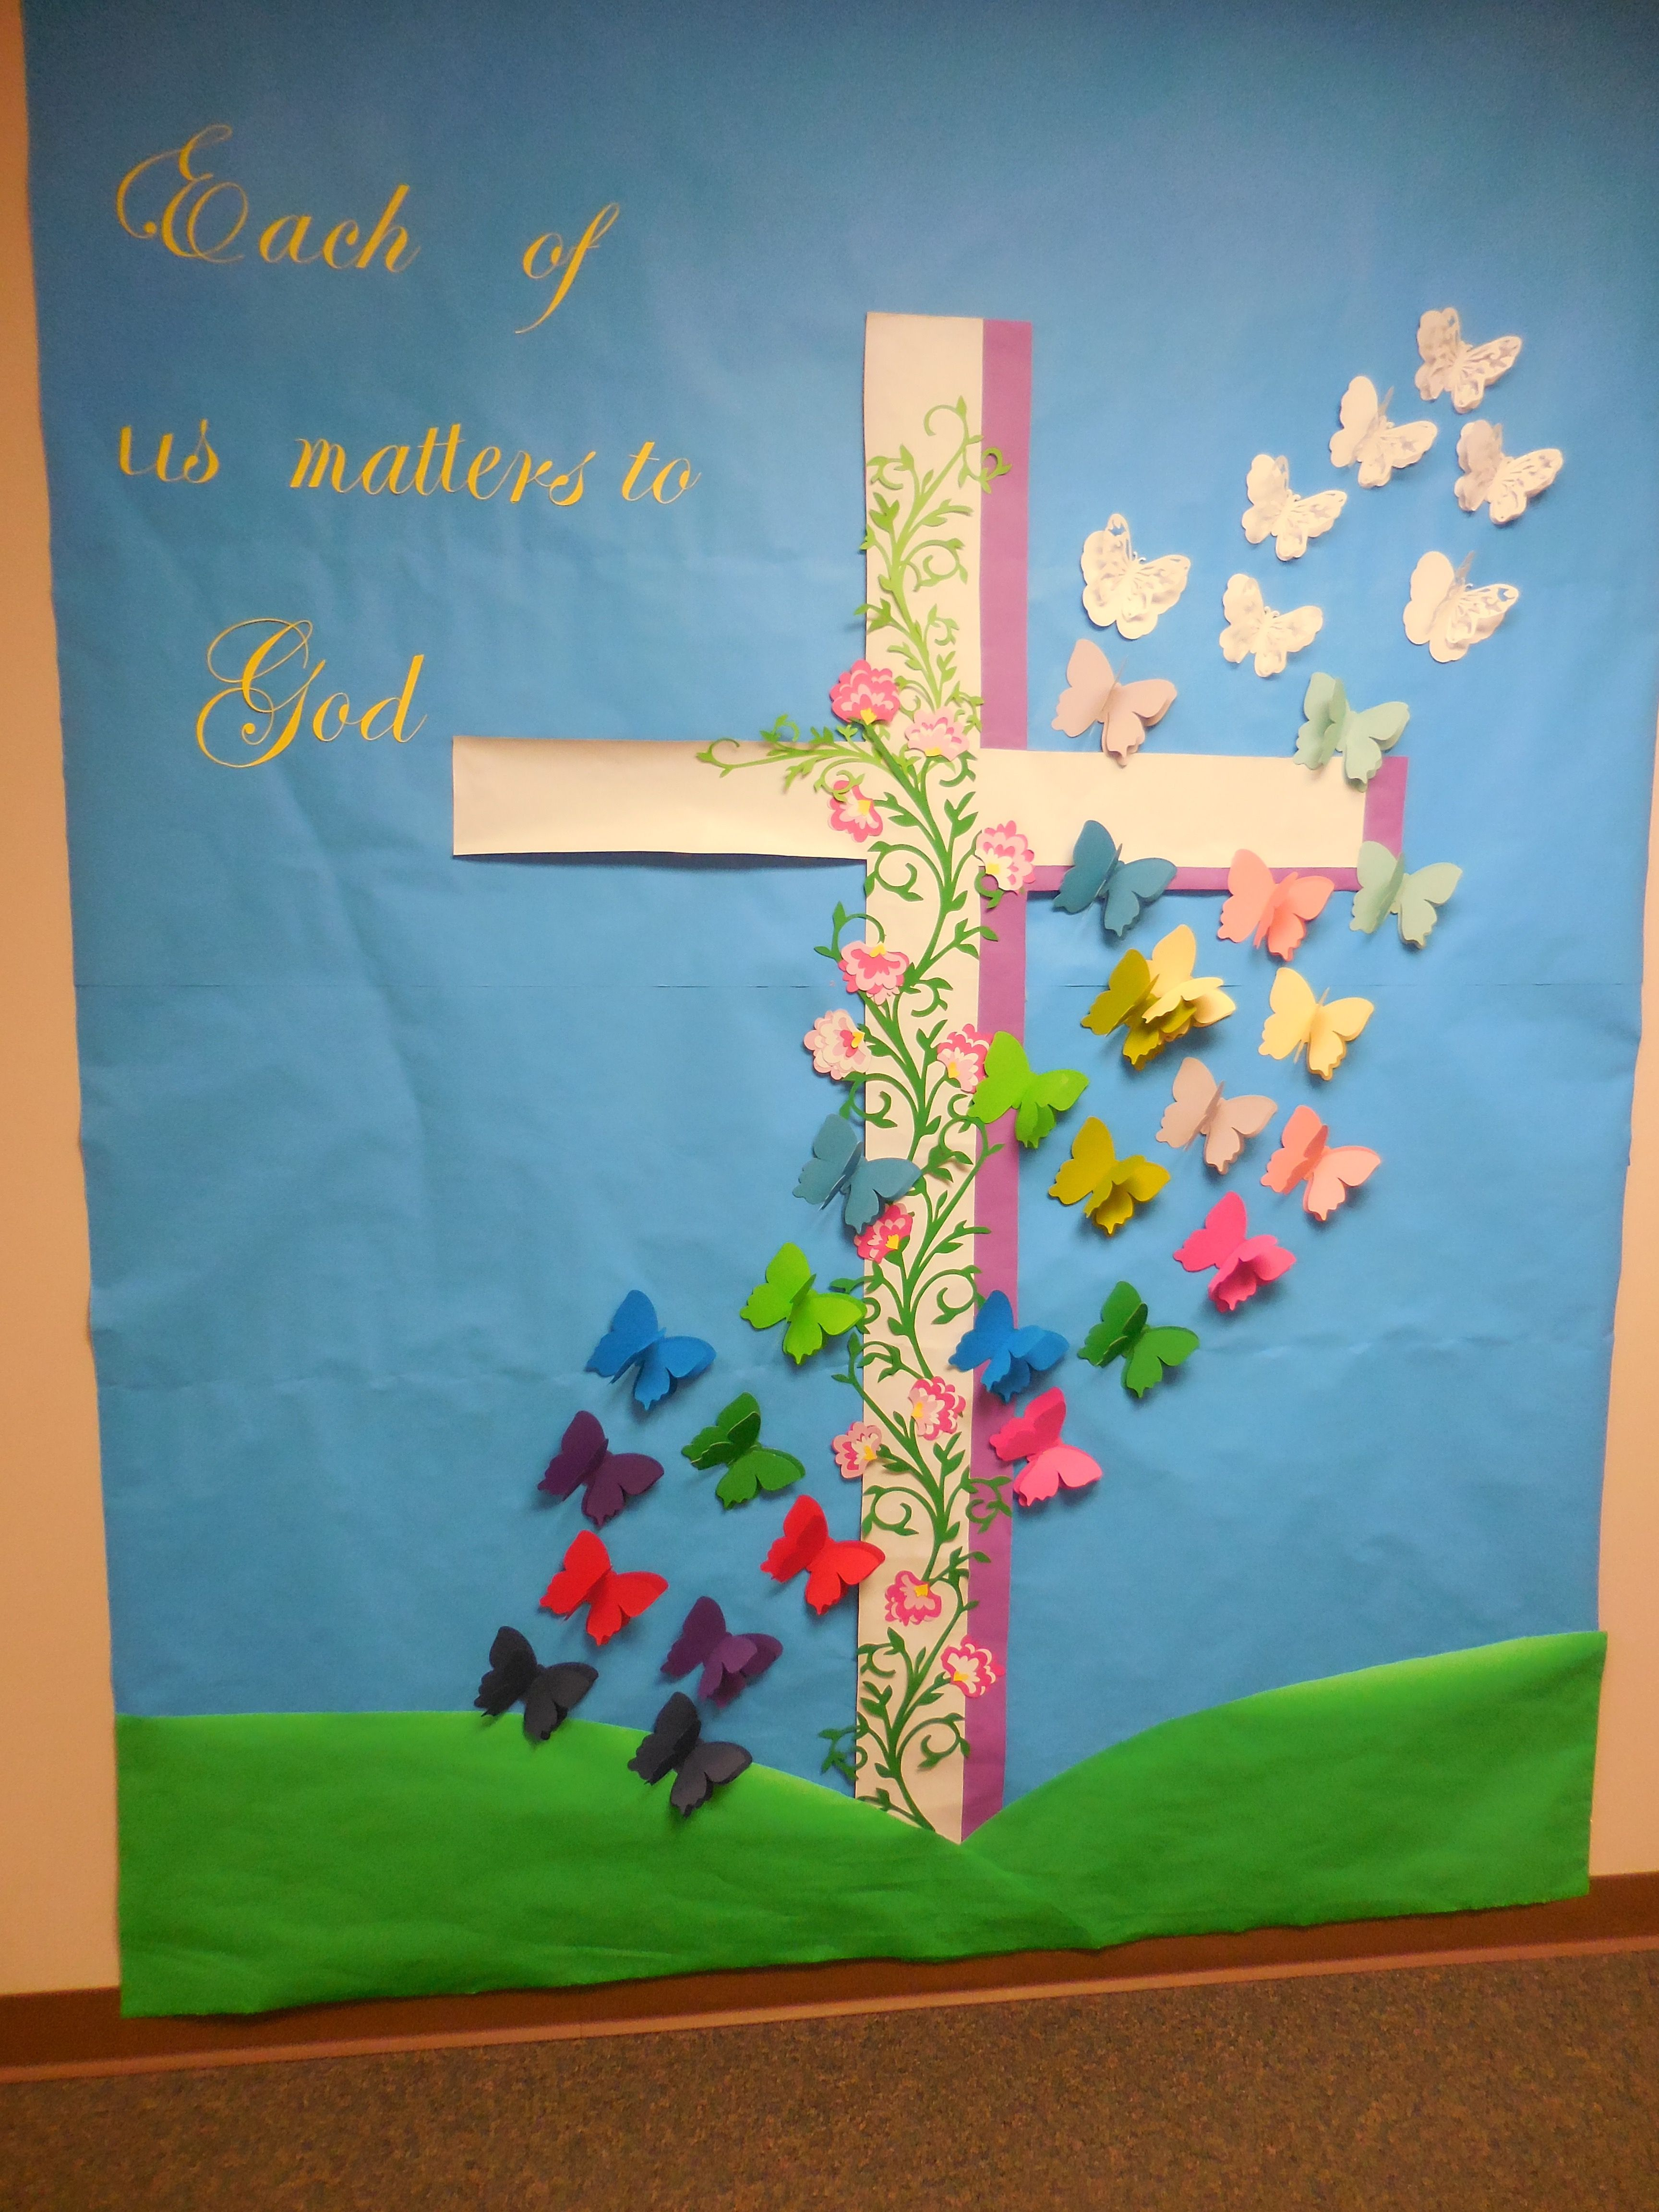 Christian easter bulletin board ideas -  each of us matters to god april easter resurrection cross christian bulletin boardsspring bulletin boardschurch bulletin